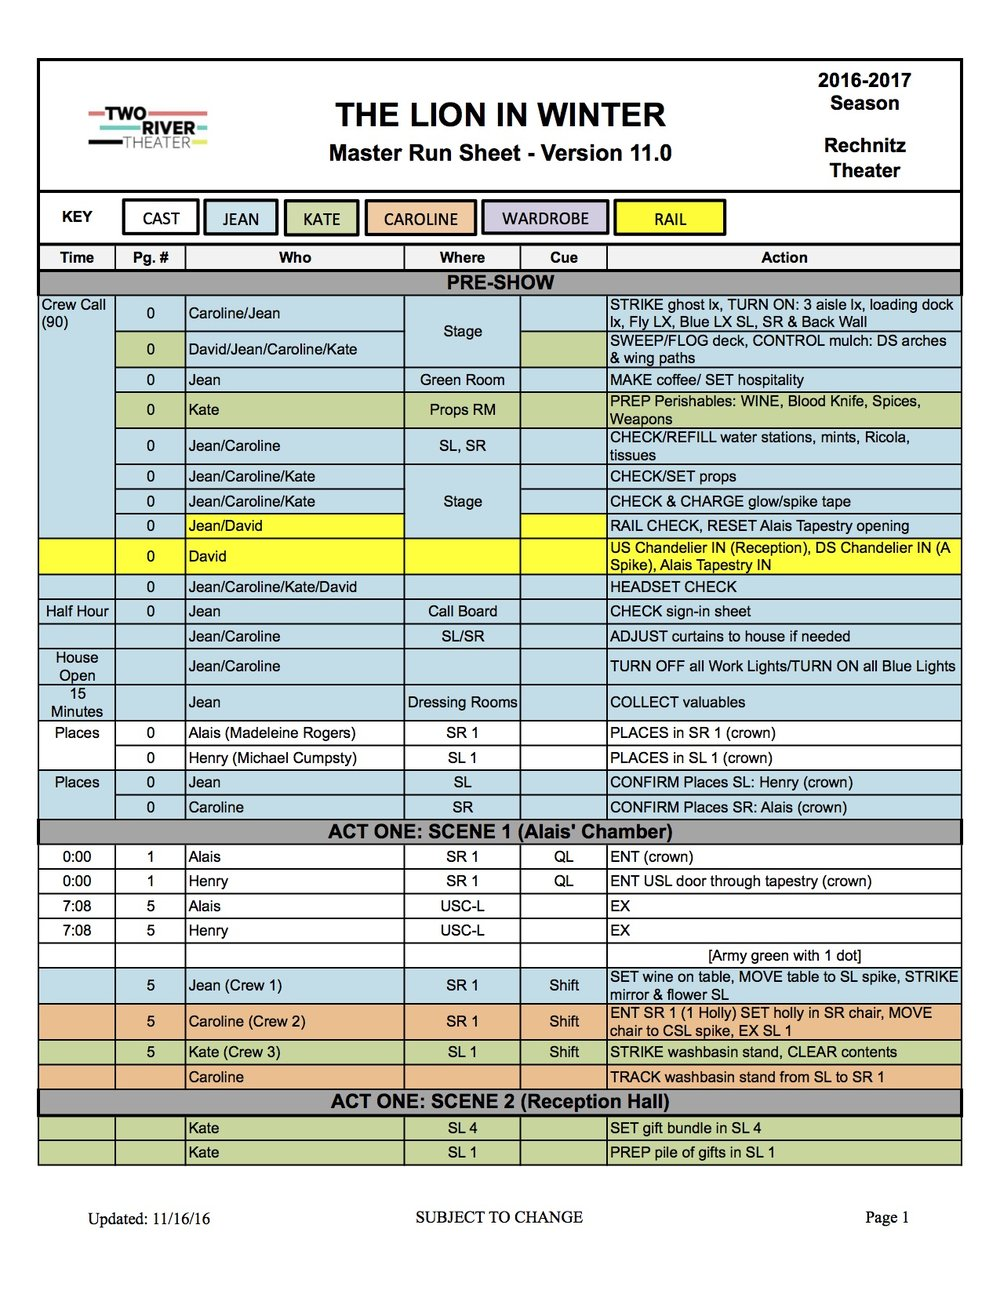 Lion Master Run Sheet 11.0.jpg